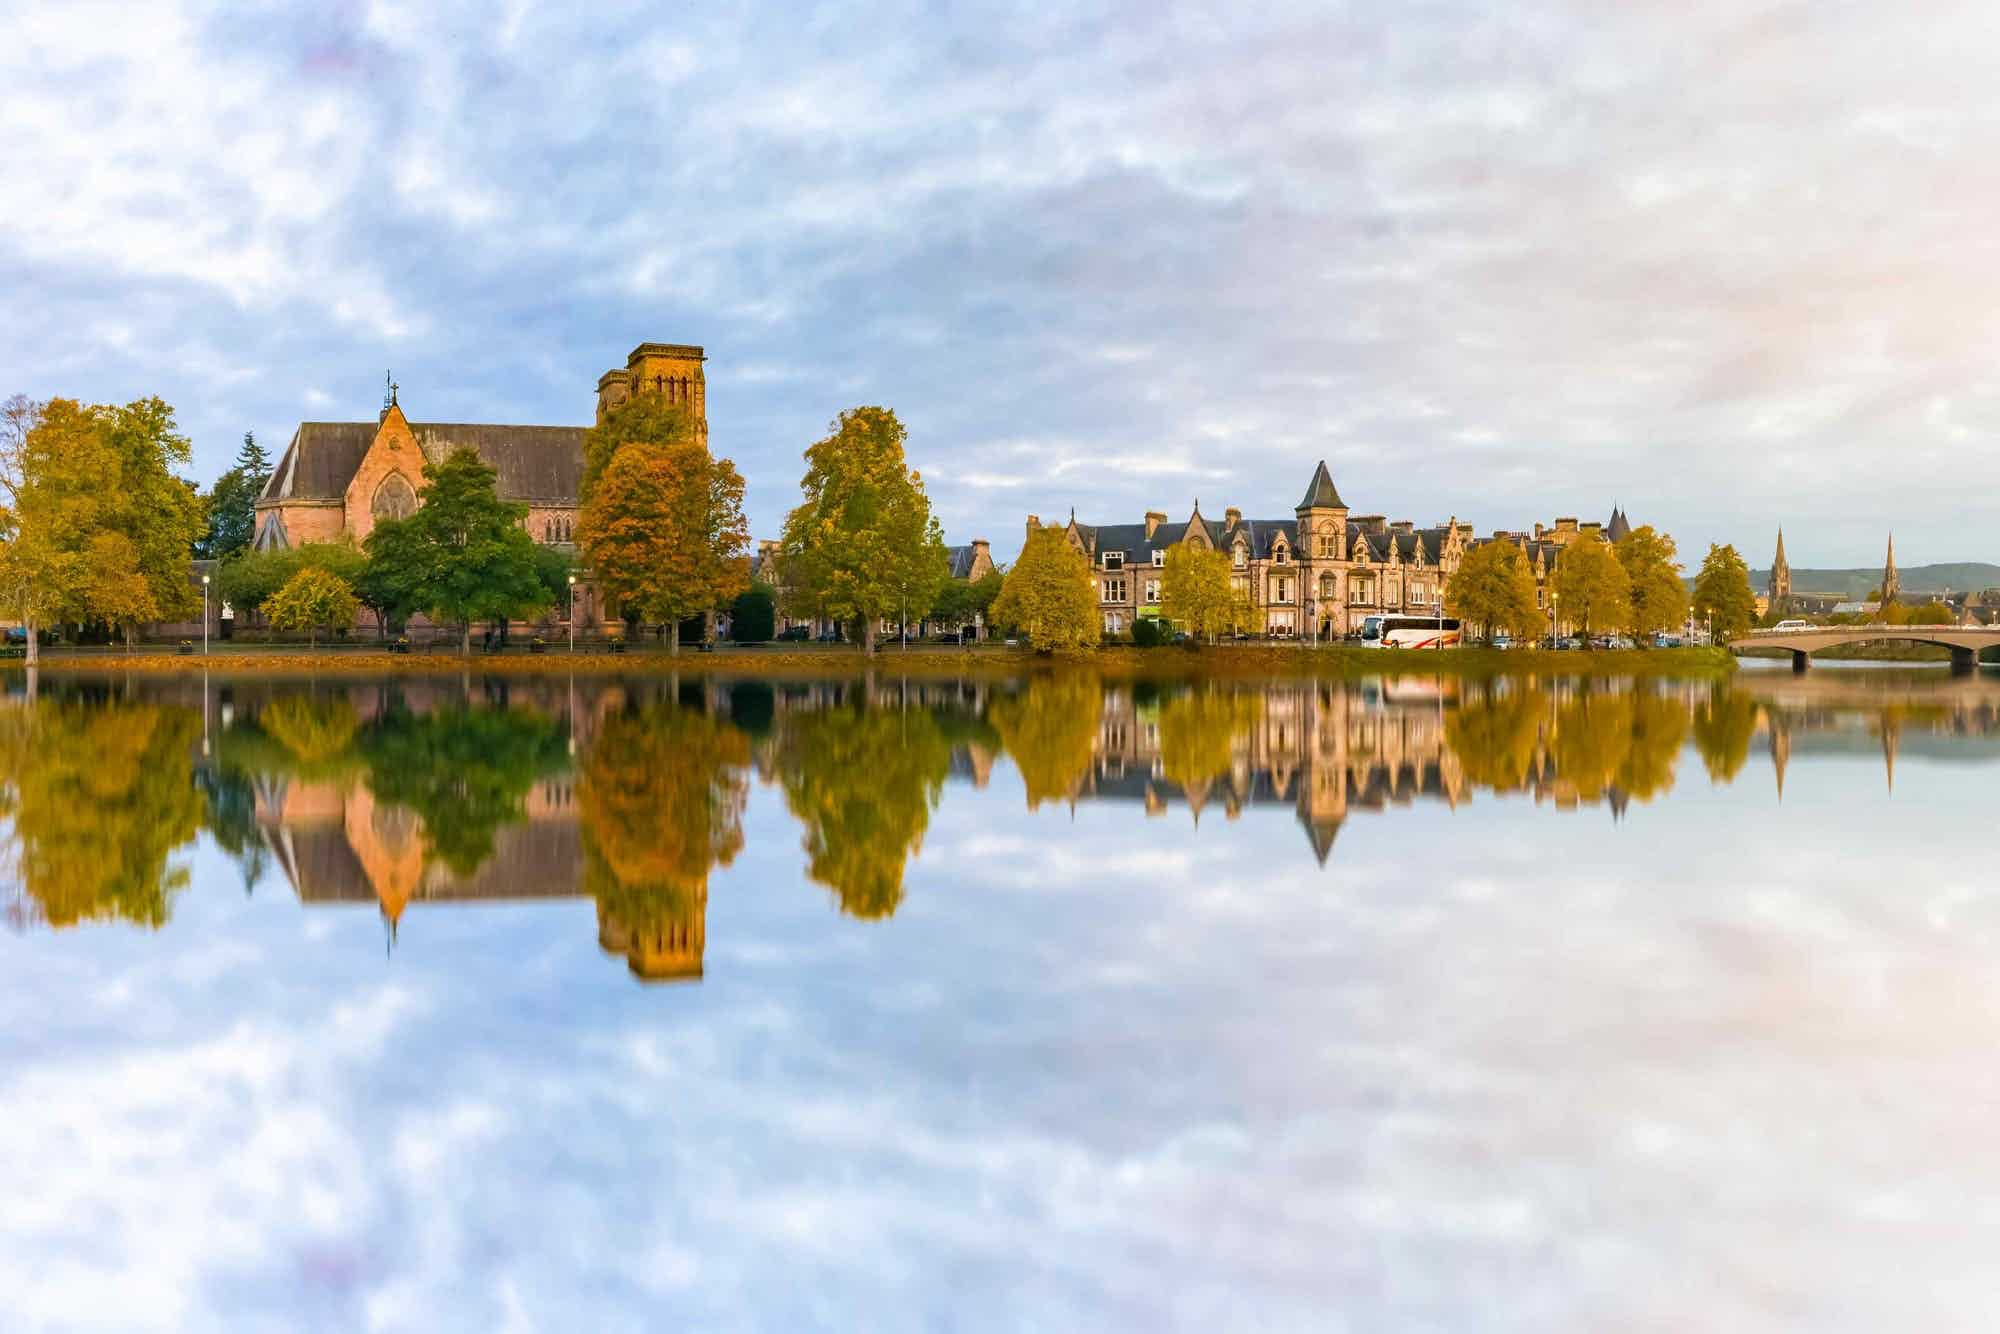 Inverness scenery mirrored in the river